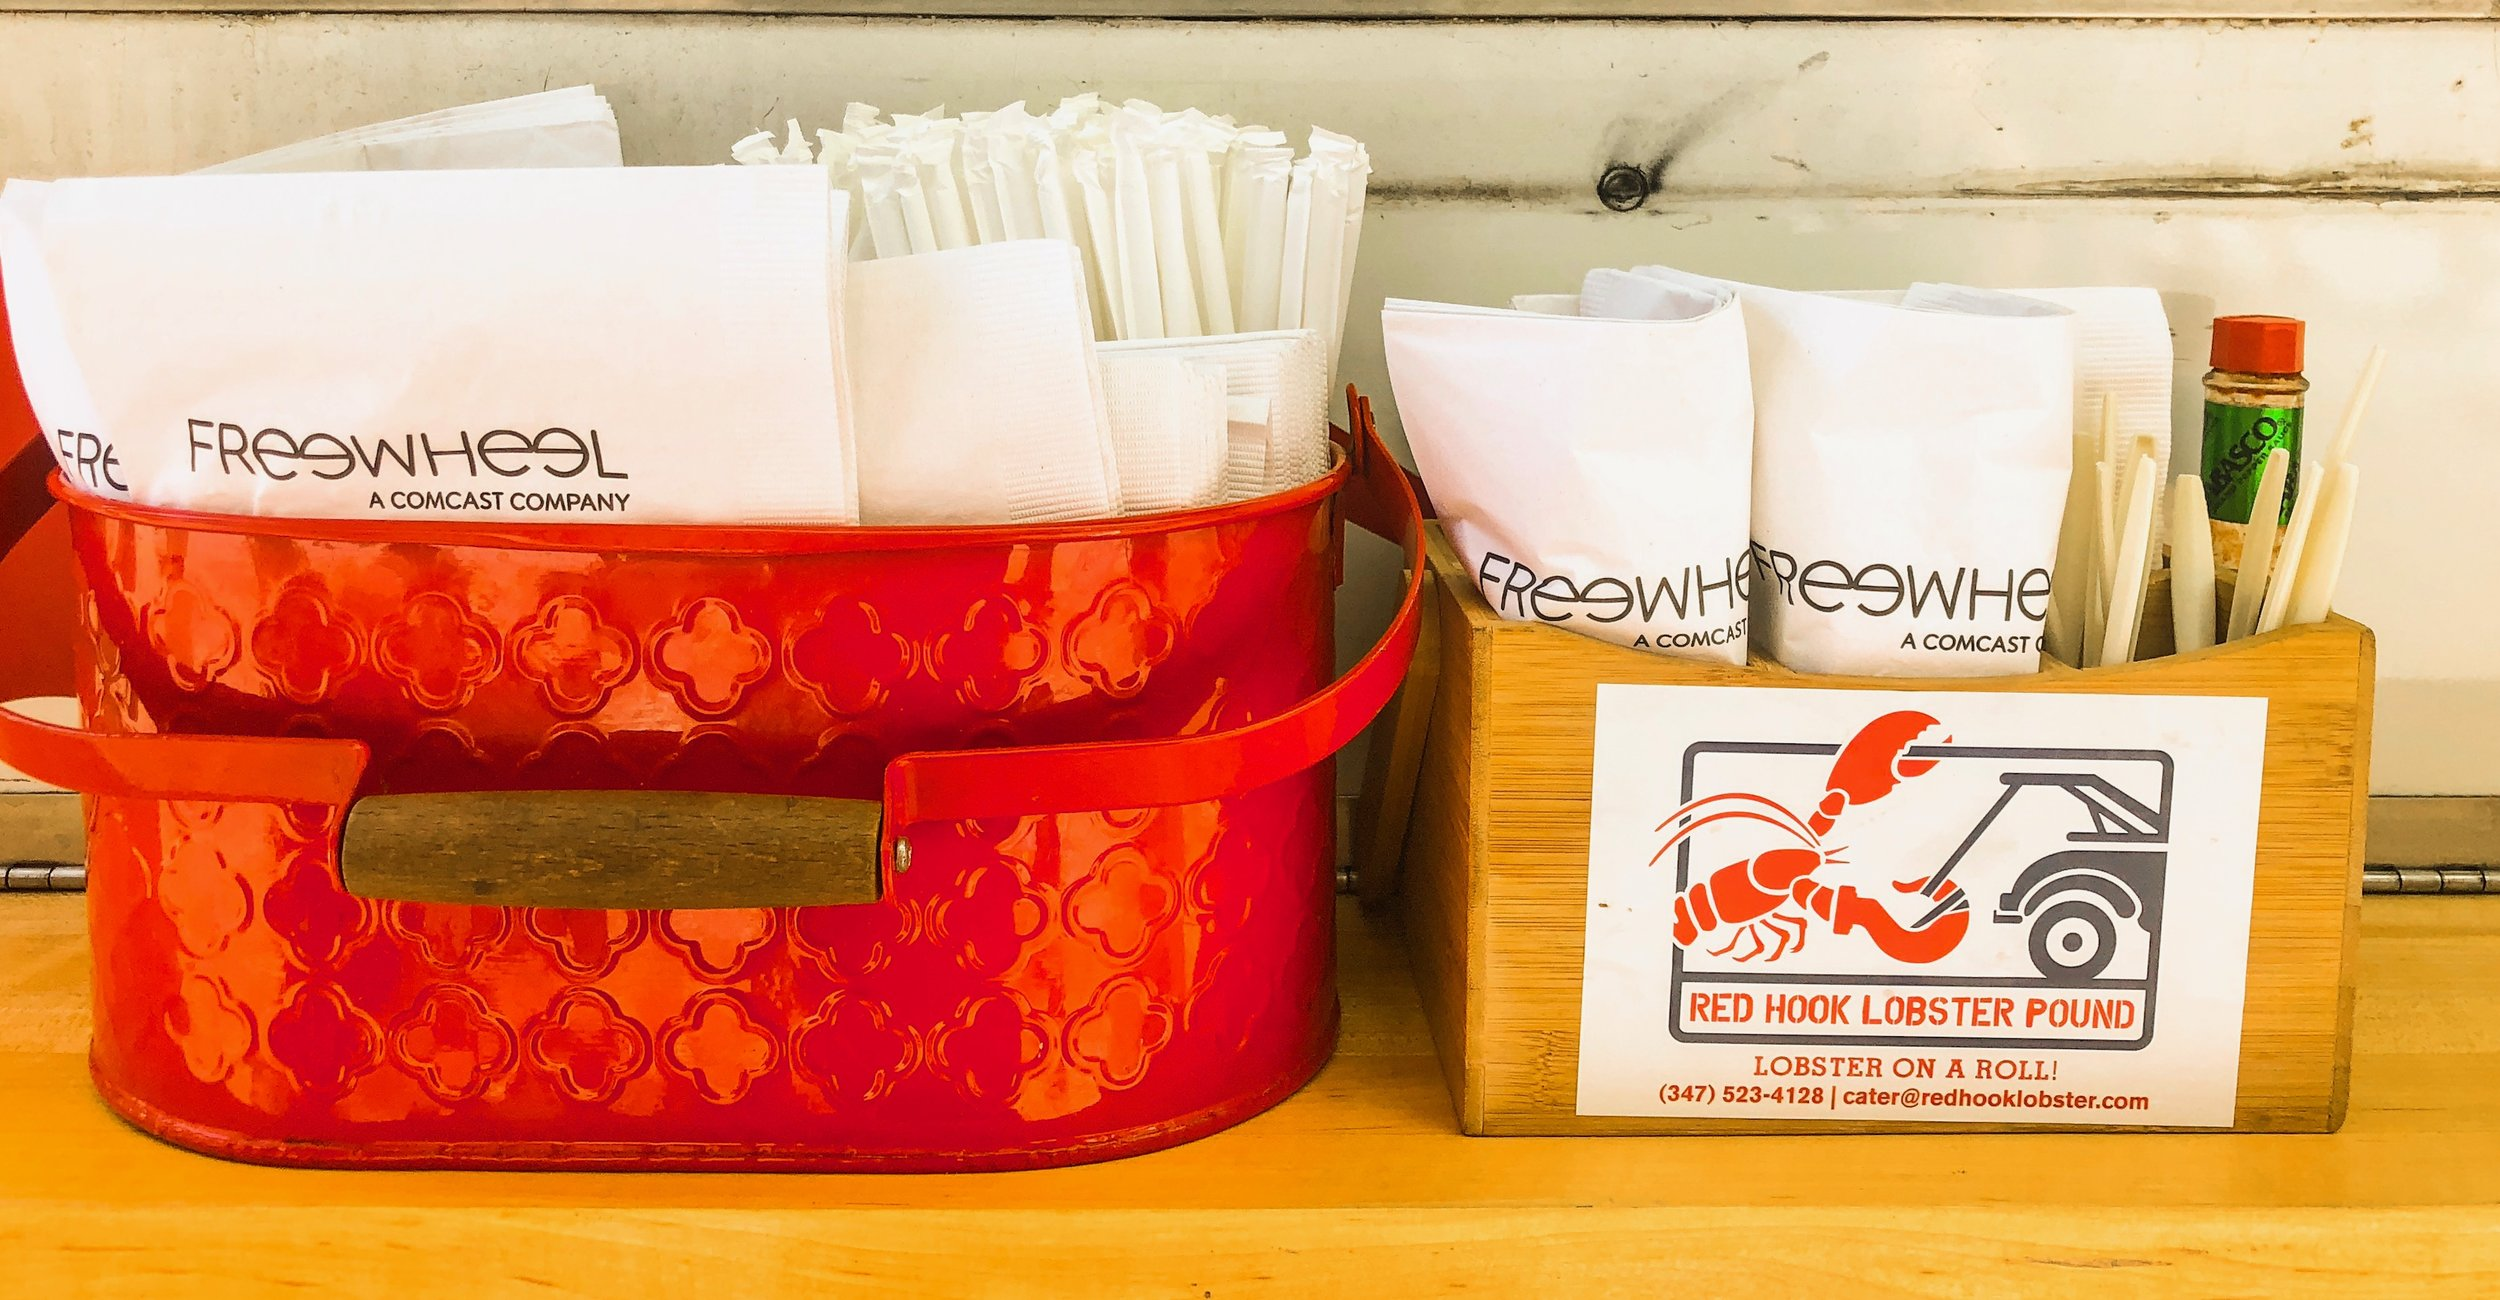 Freewheel.tv partnered with Red Hook Lobster Pound and created the perfect way to bring brand awareness to a lunch hour